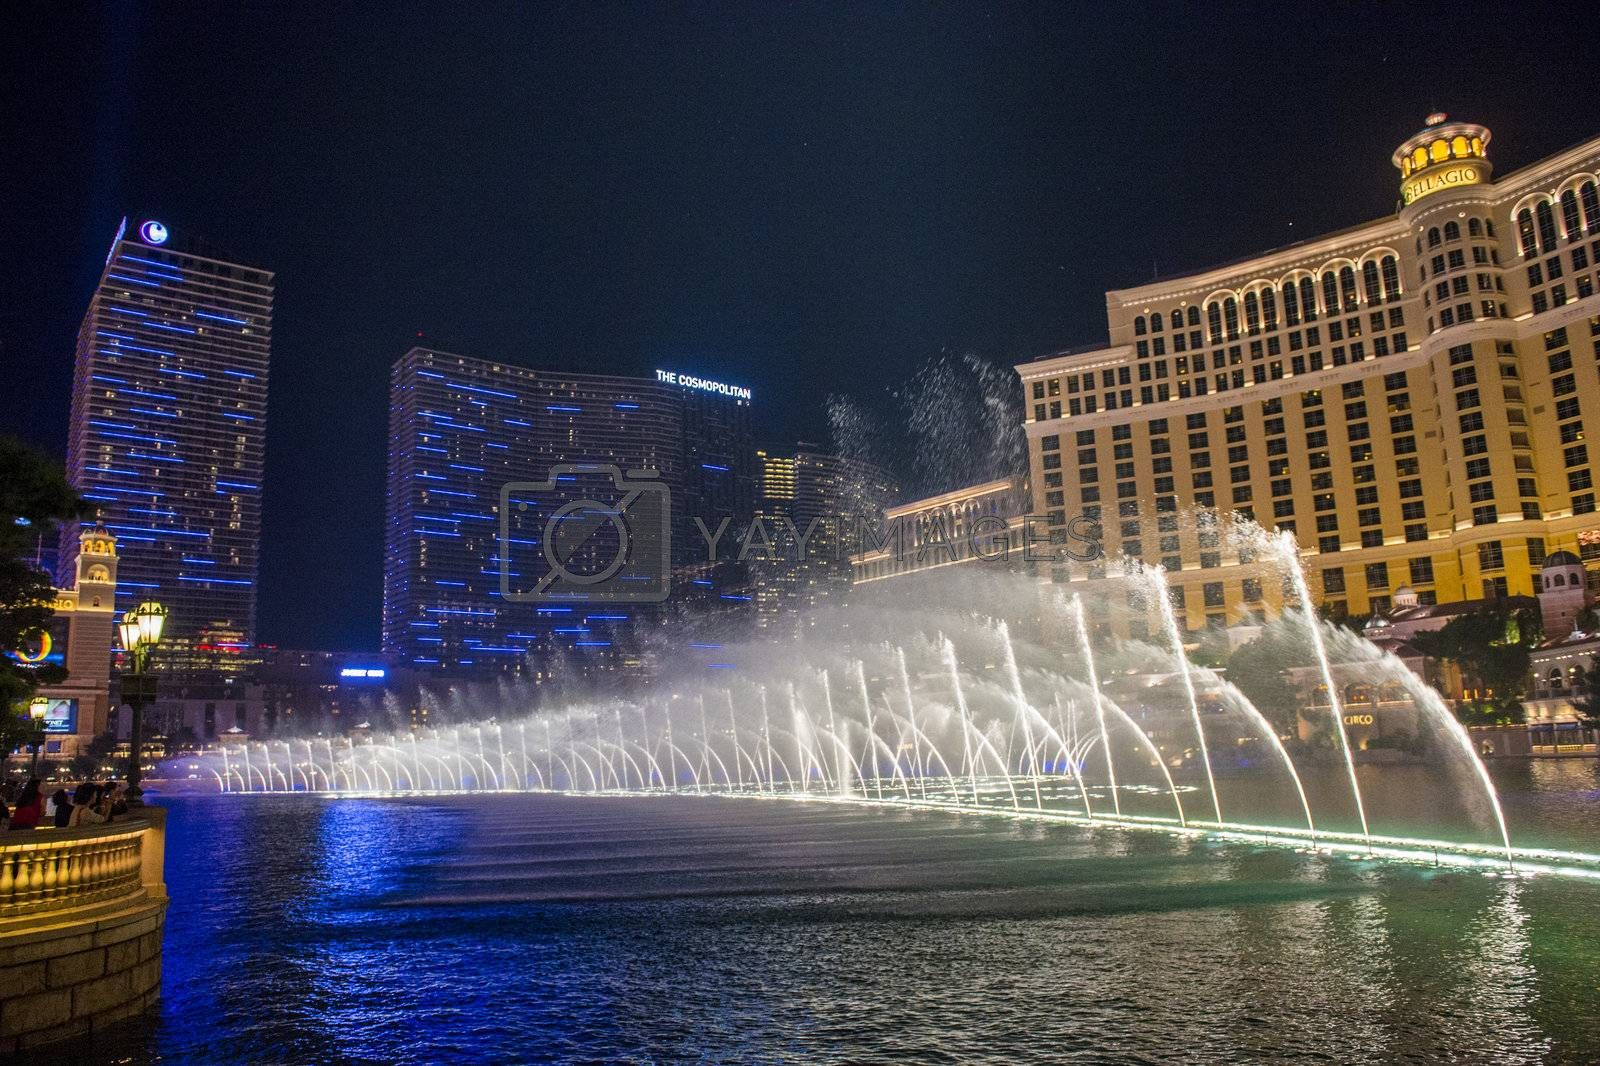 LAS VEGAS - NOVEMBER 08: Bellagio hotel and casino Fountains on November 08, 2012 in Las Vegas. Las Vegas in 2012 is projected to break the all-time visitor volume record of 39-plus million visitors